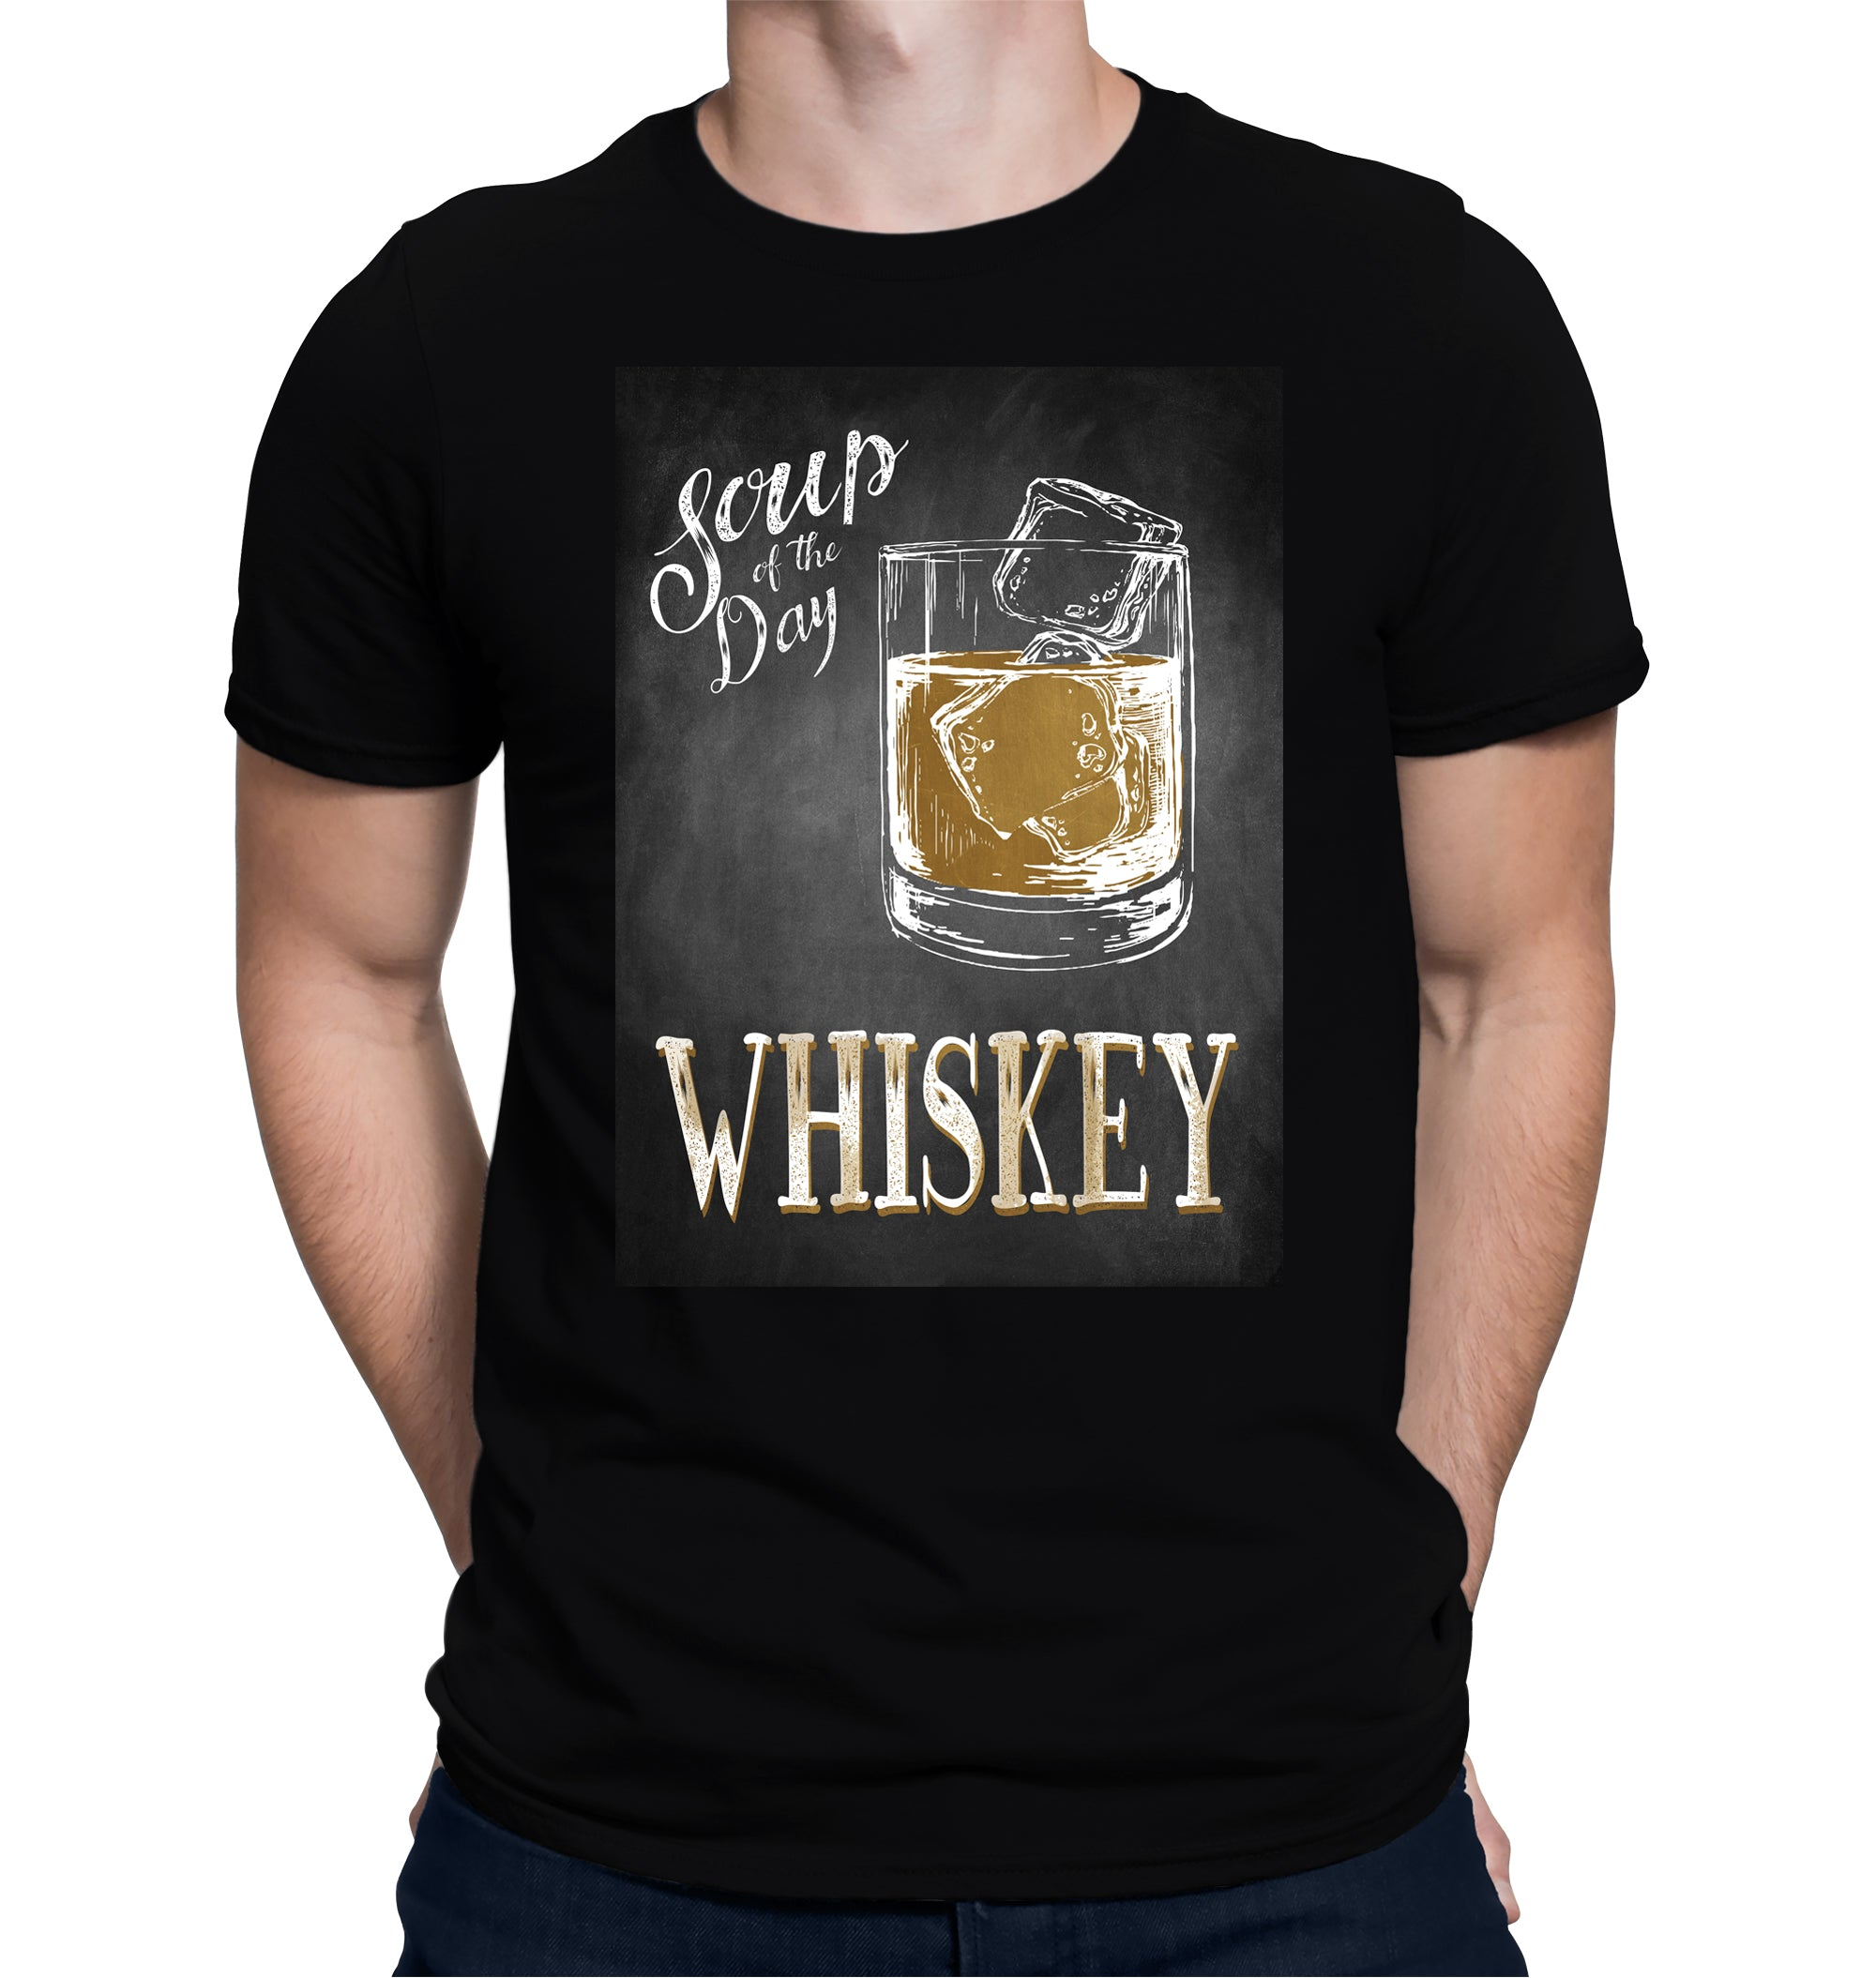 Soup of the Day, Whiskey T-Shirt on Model